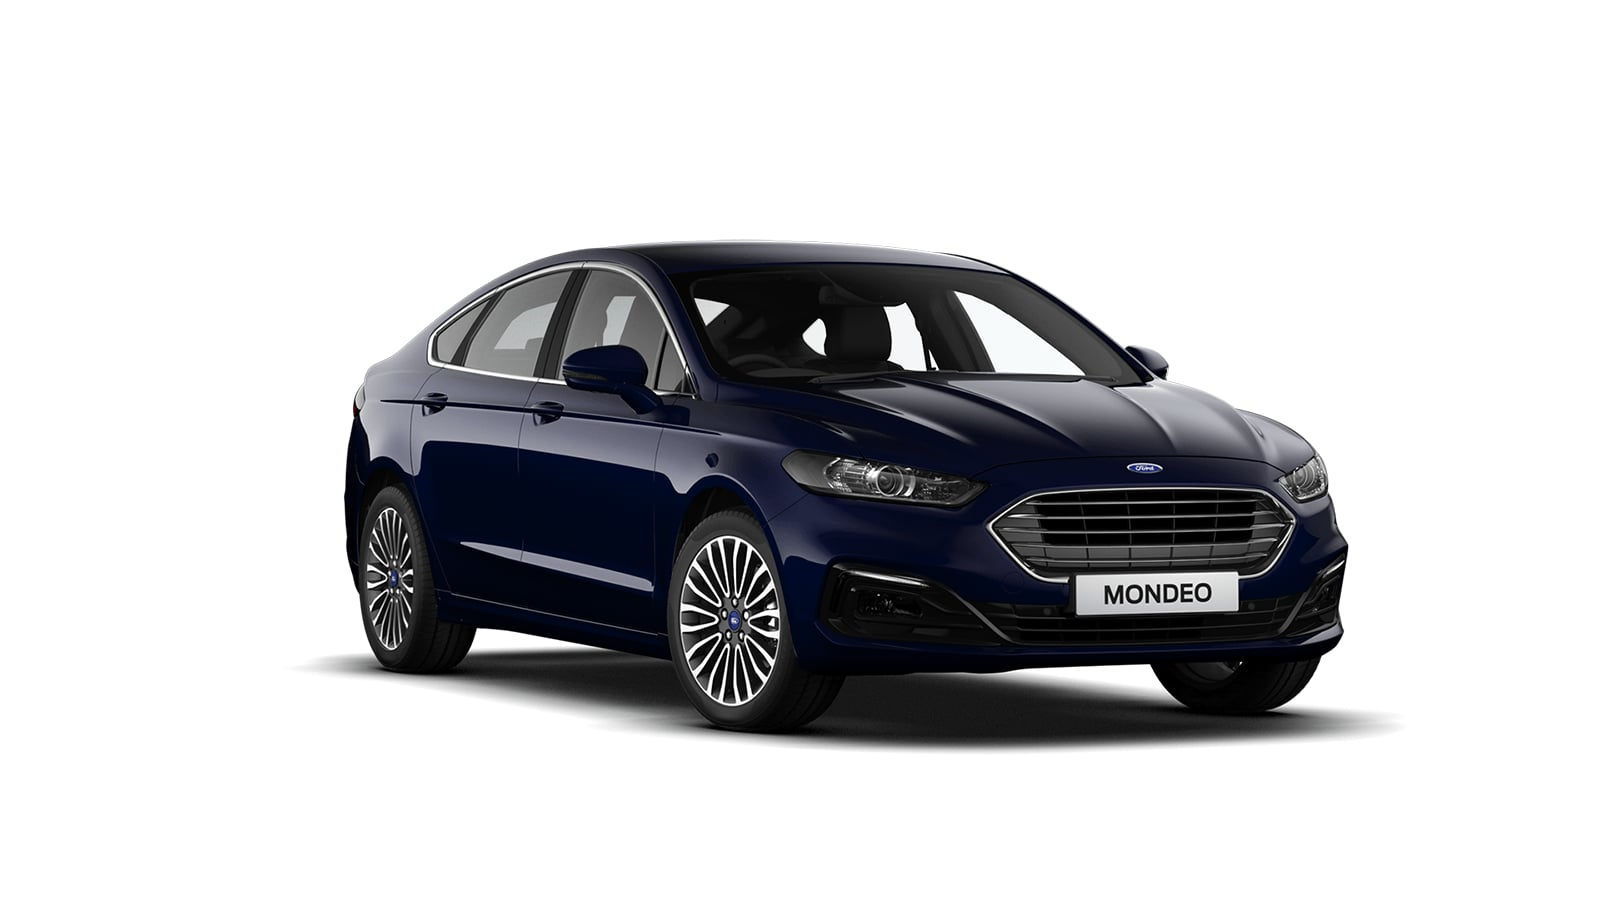 Ford Mondeo Titanium Edition 1.5L EcoBoost 165PS at Browne & Day